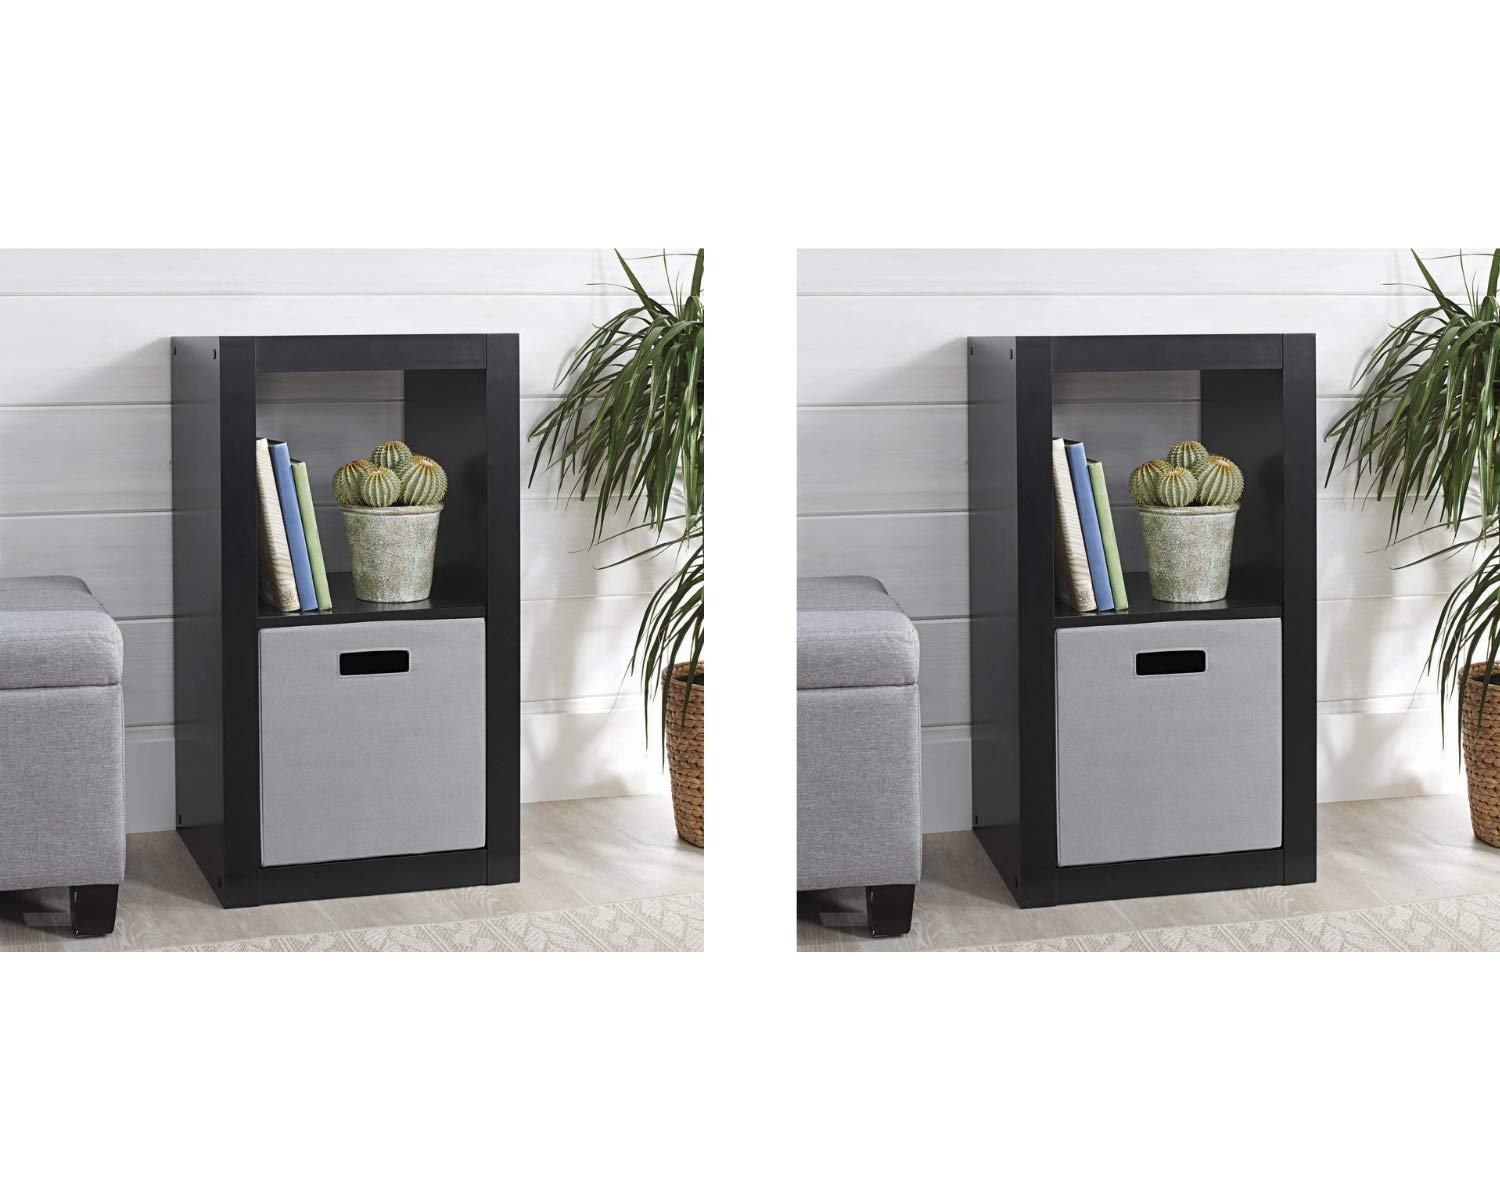 Better Homes and Gardens 2-Cube Organizer, (2 Set, 2-Cube Organizer, Solid Black) by .Better Homes & Gardens (Image #1)